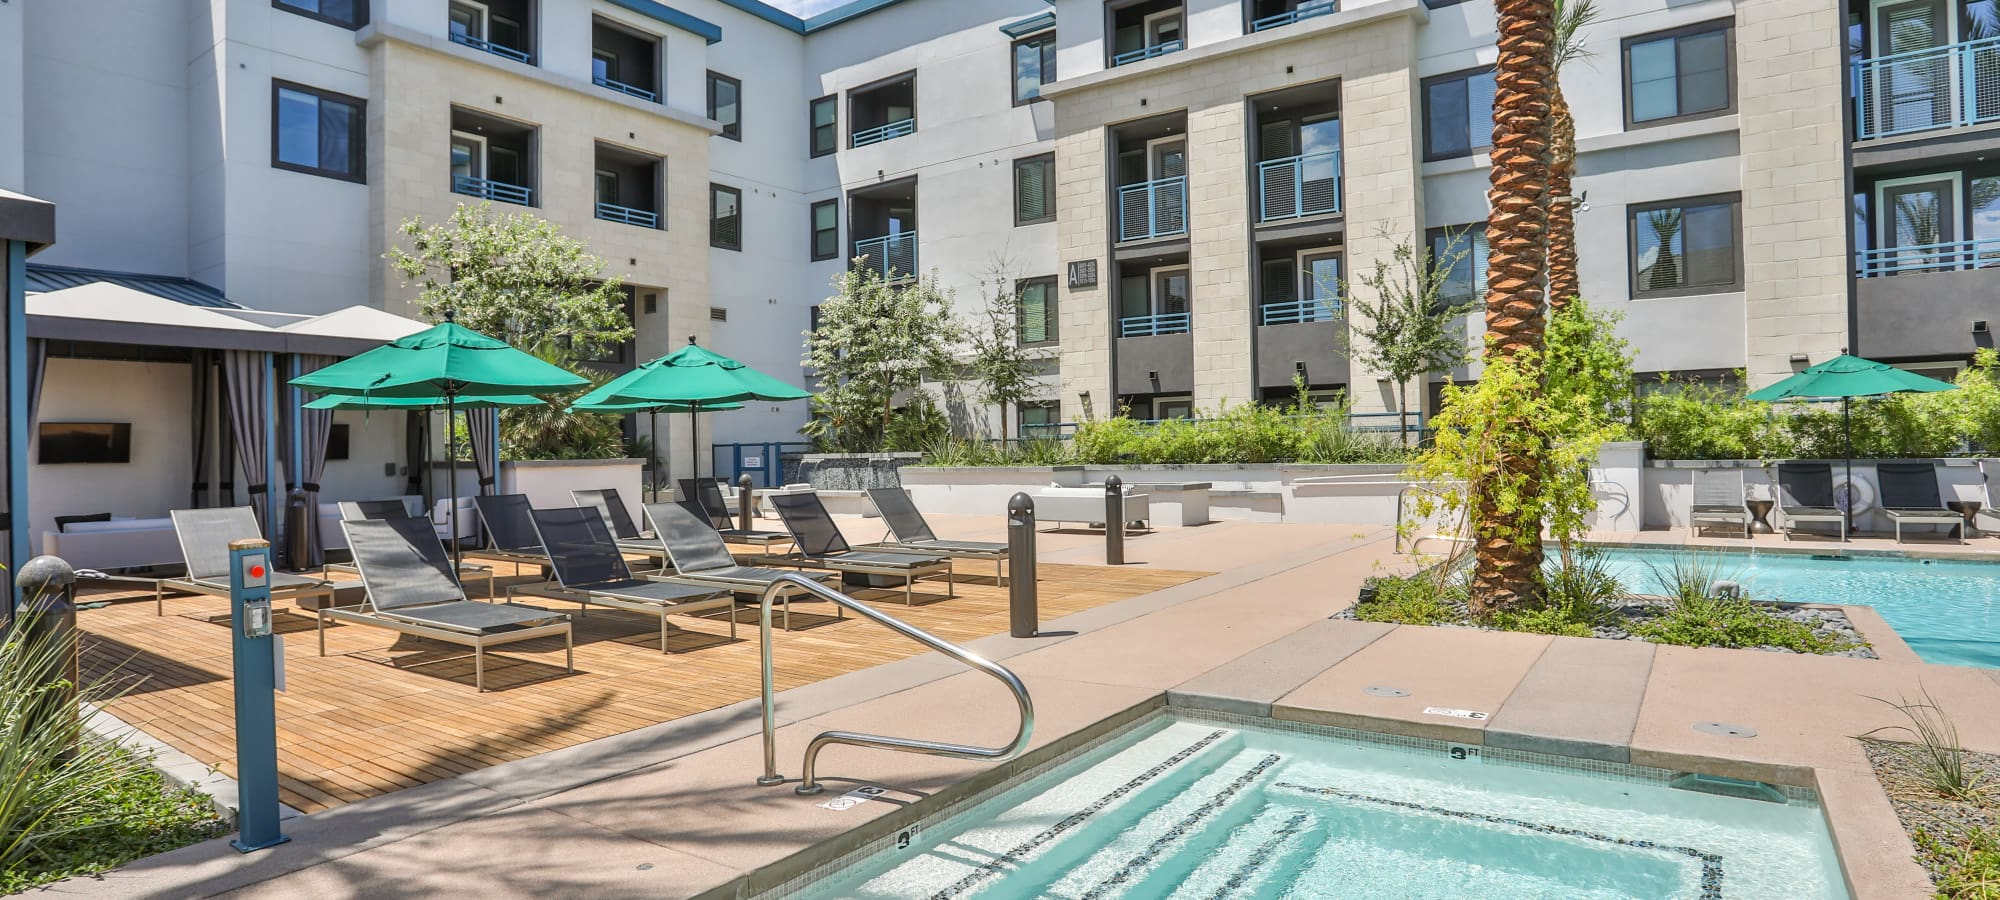 Relaxing outdoor hot tub at Lakeside Drive Apartments in Tempe, Arizona